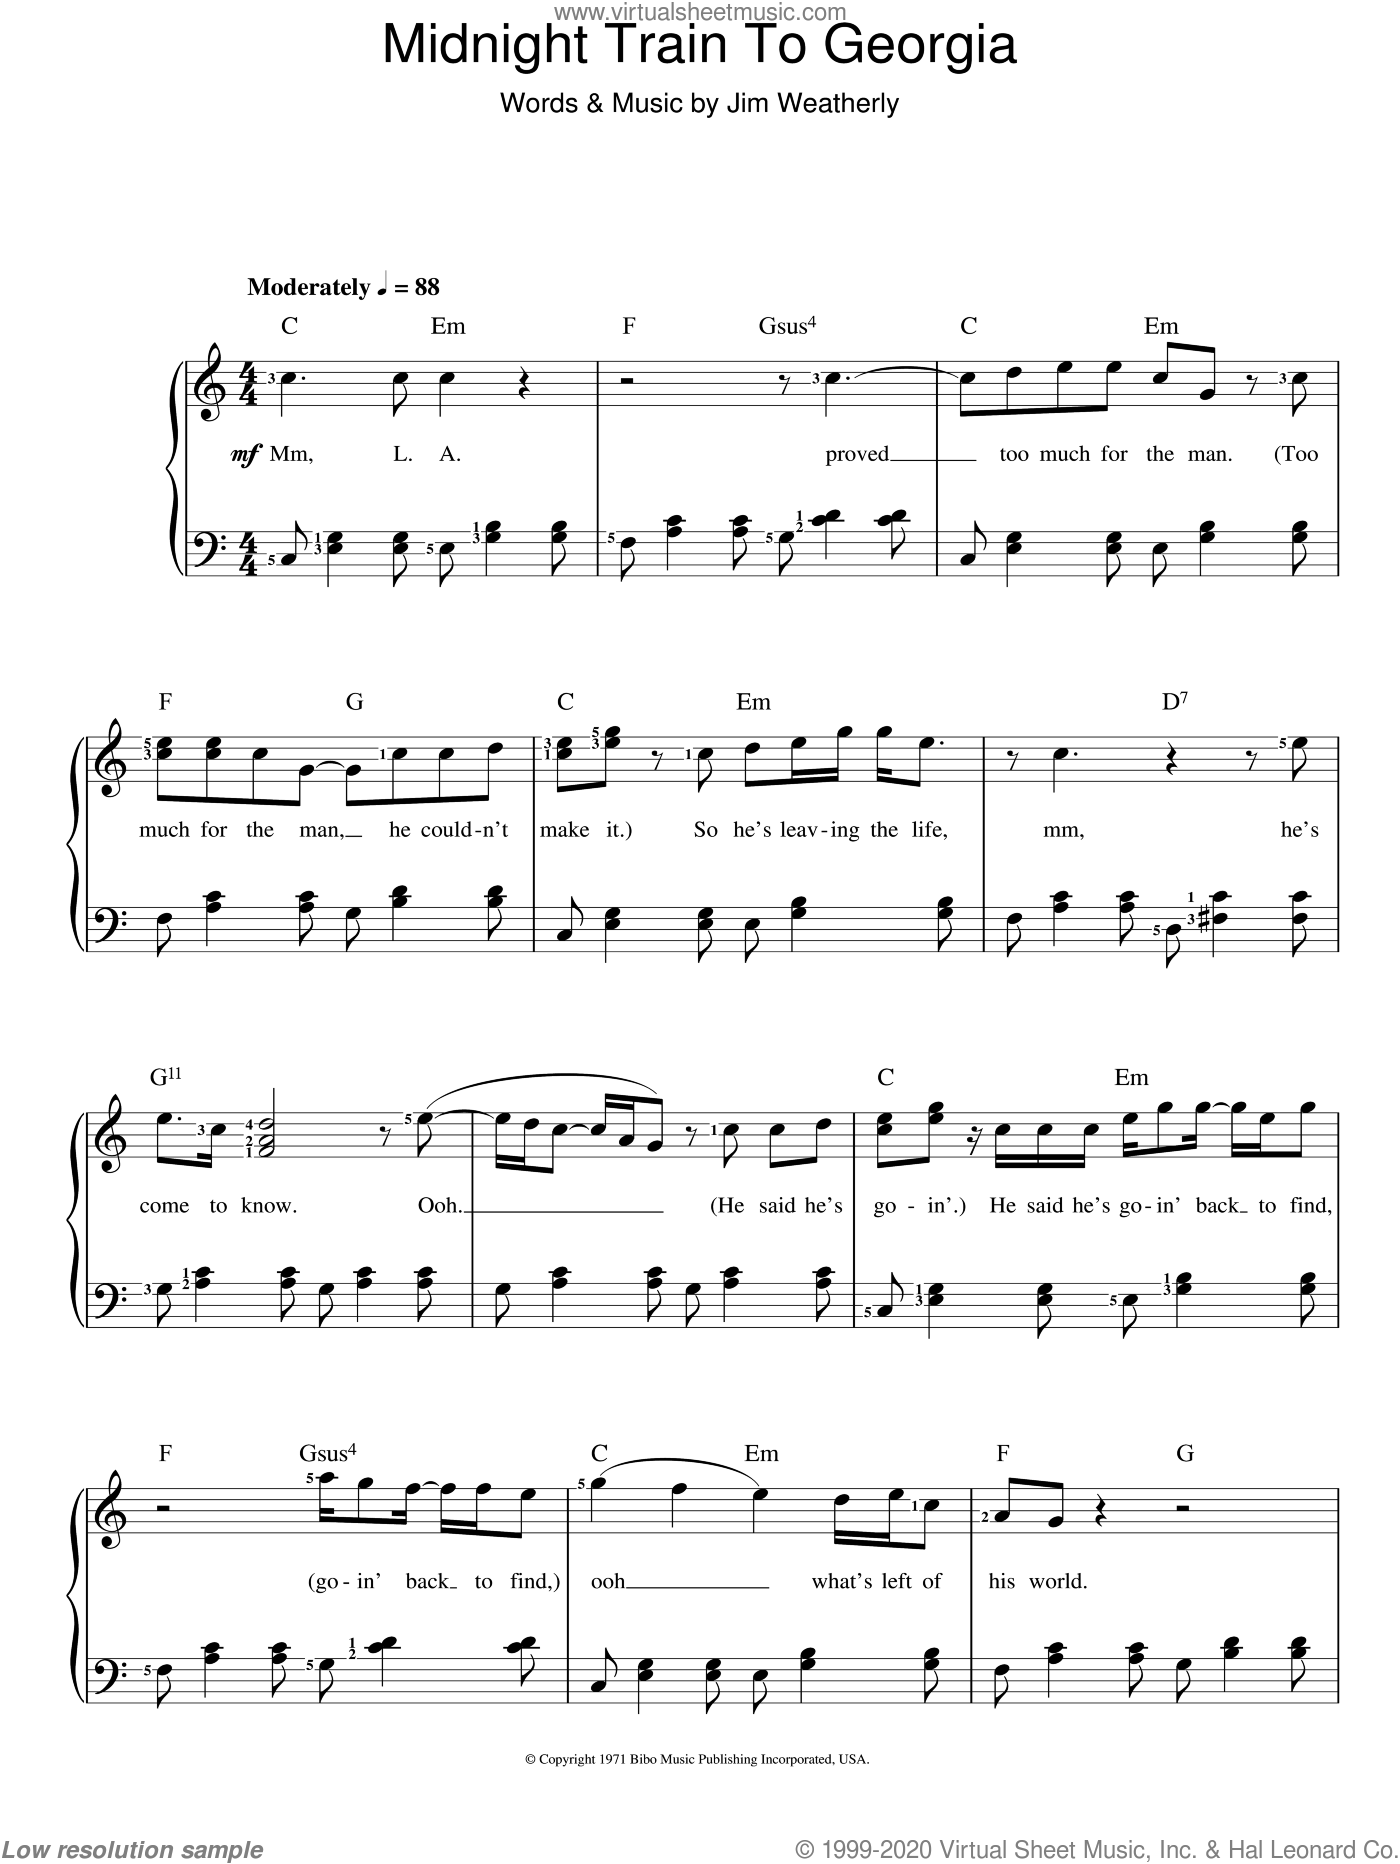 Midnight Train To Georgia sheet music for voice and piano by Gladys Knight and Jim Weatherly, intermediate skill level